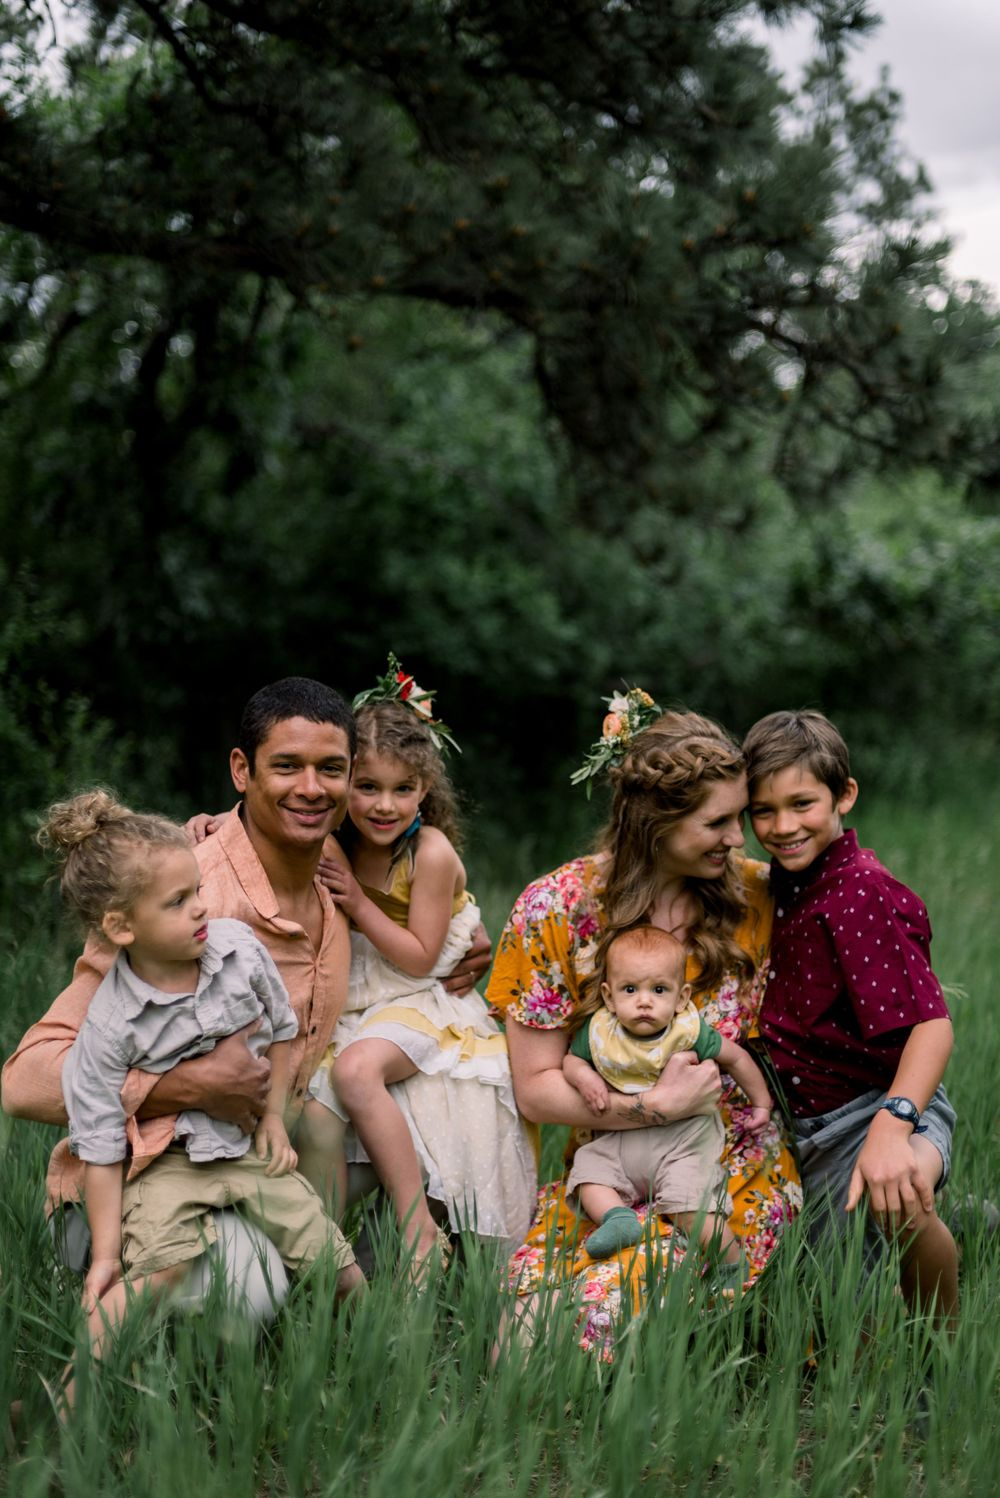 Allison-Easterling-Photography-Colorado-Family-Photographer